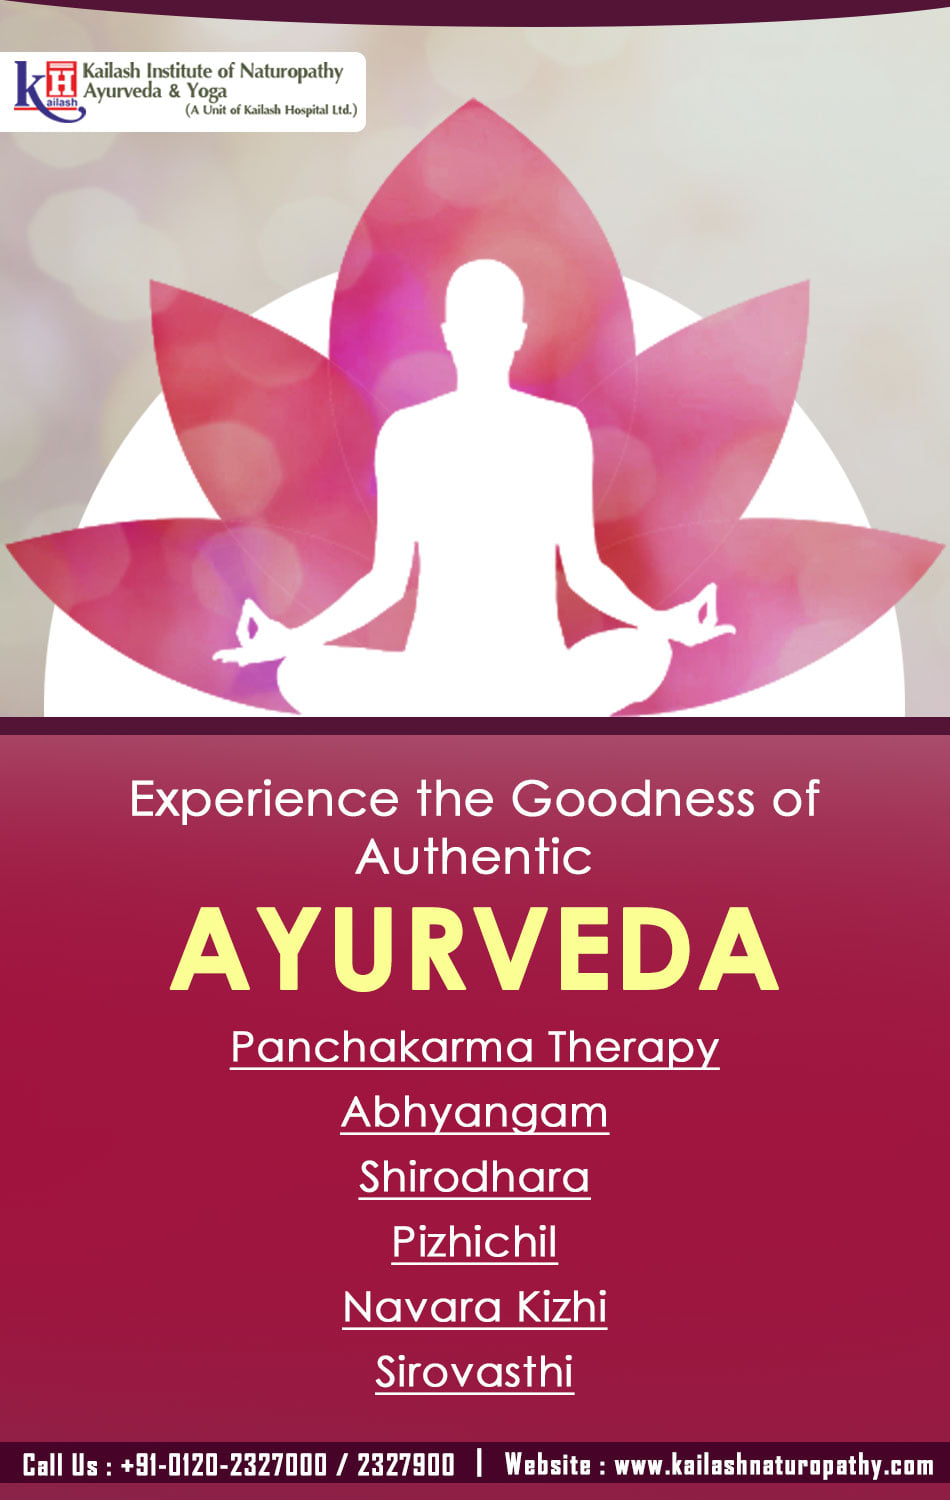 Experience the Health benefits of Ayurveda Therapies at KINAY with all the authentic treatments for health problems & relaxation.